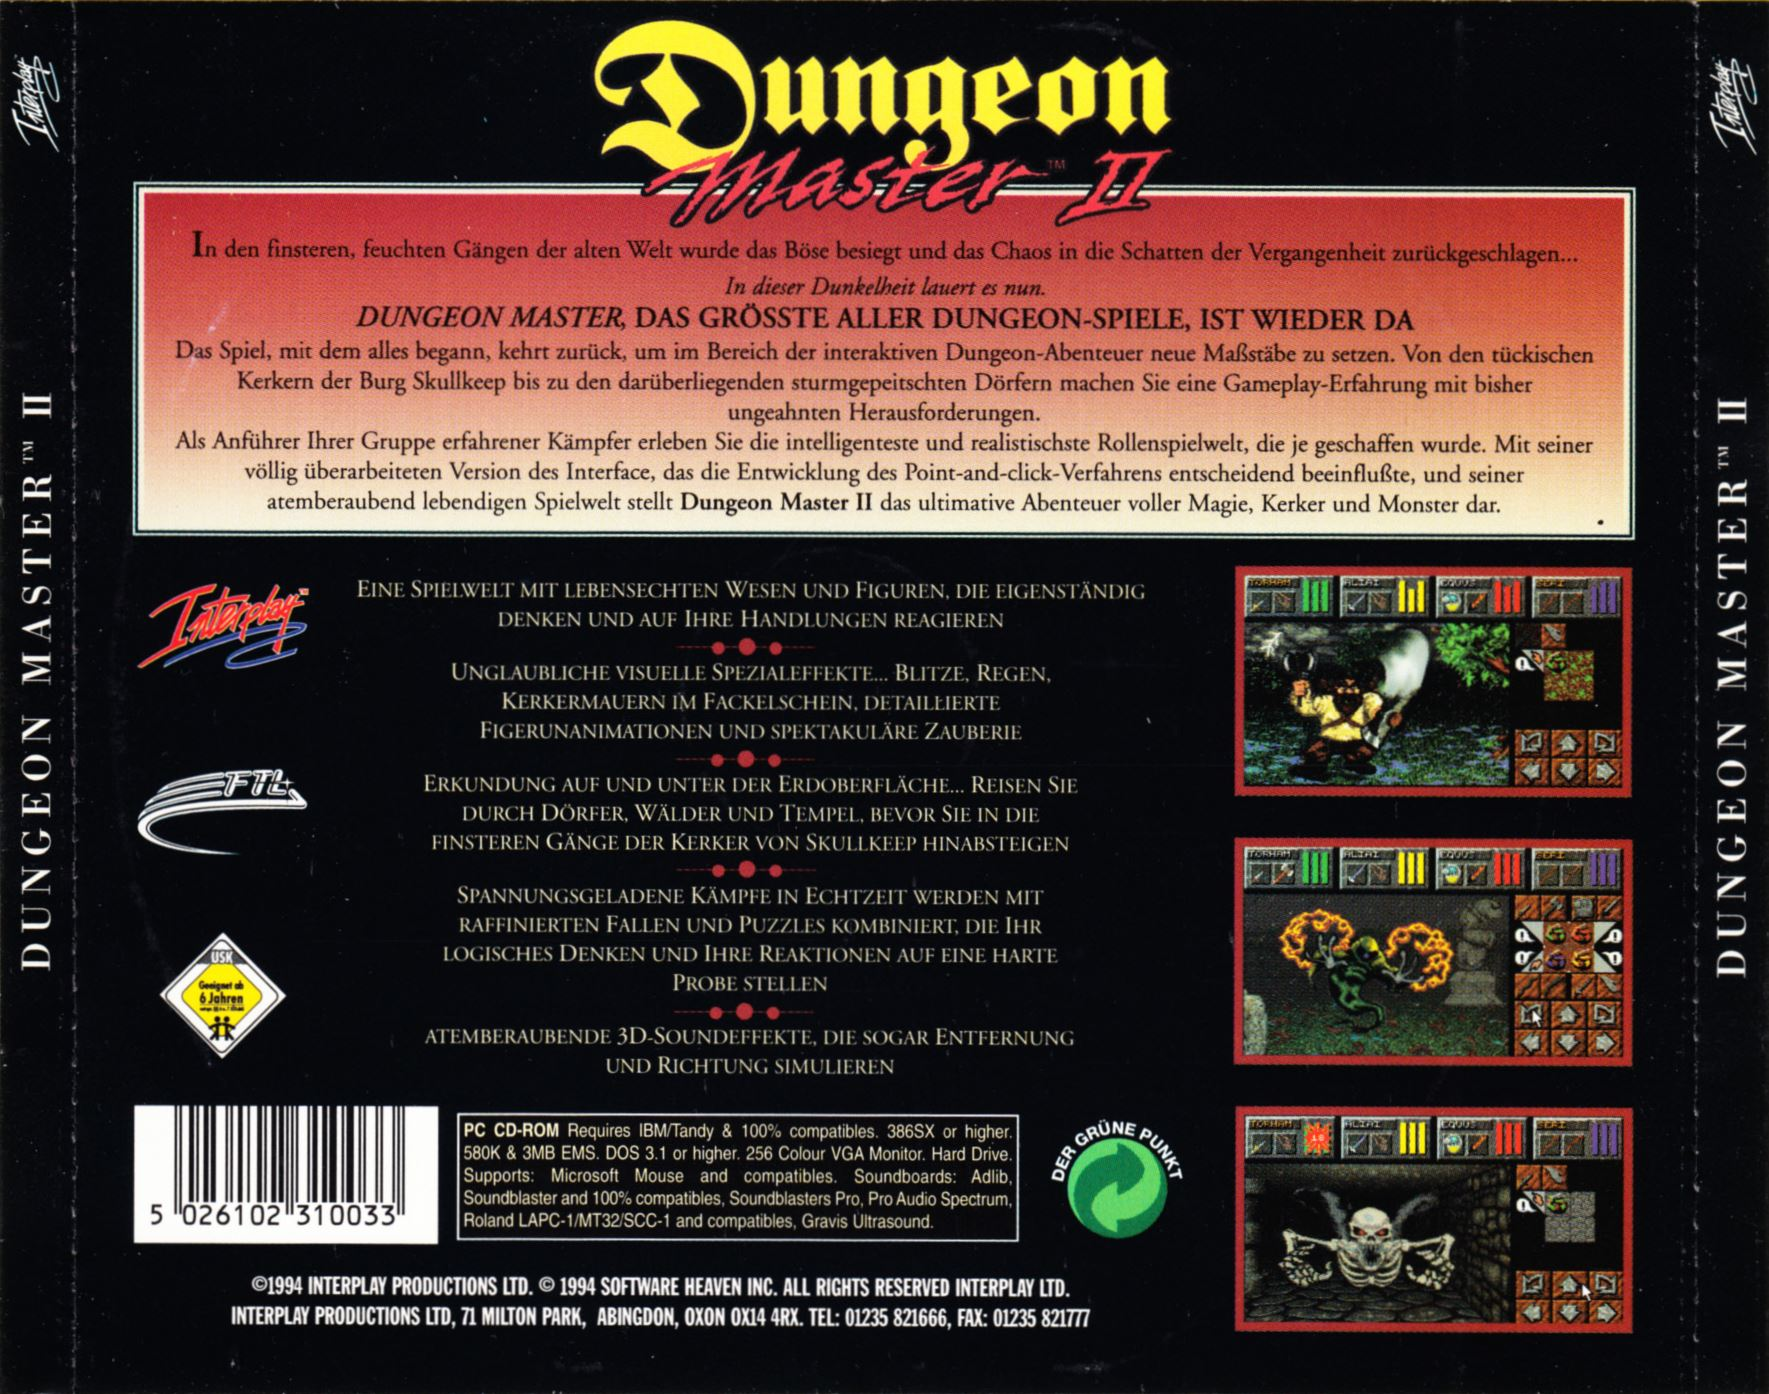 Game - Dungeon Master II - DE - PC - Jewel Case - Back Card - Front - Scan